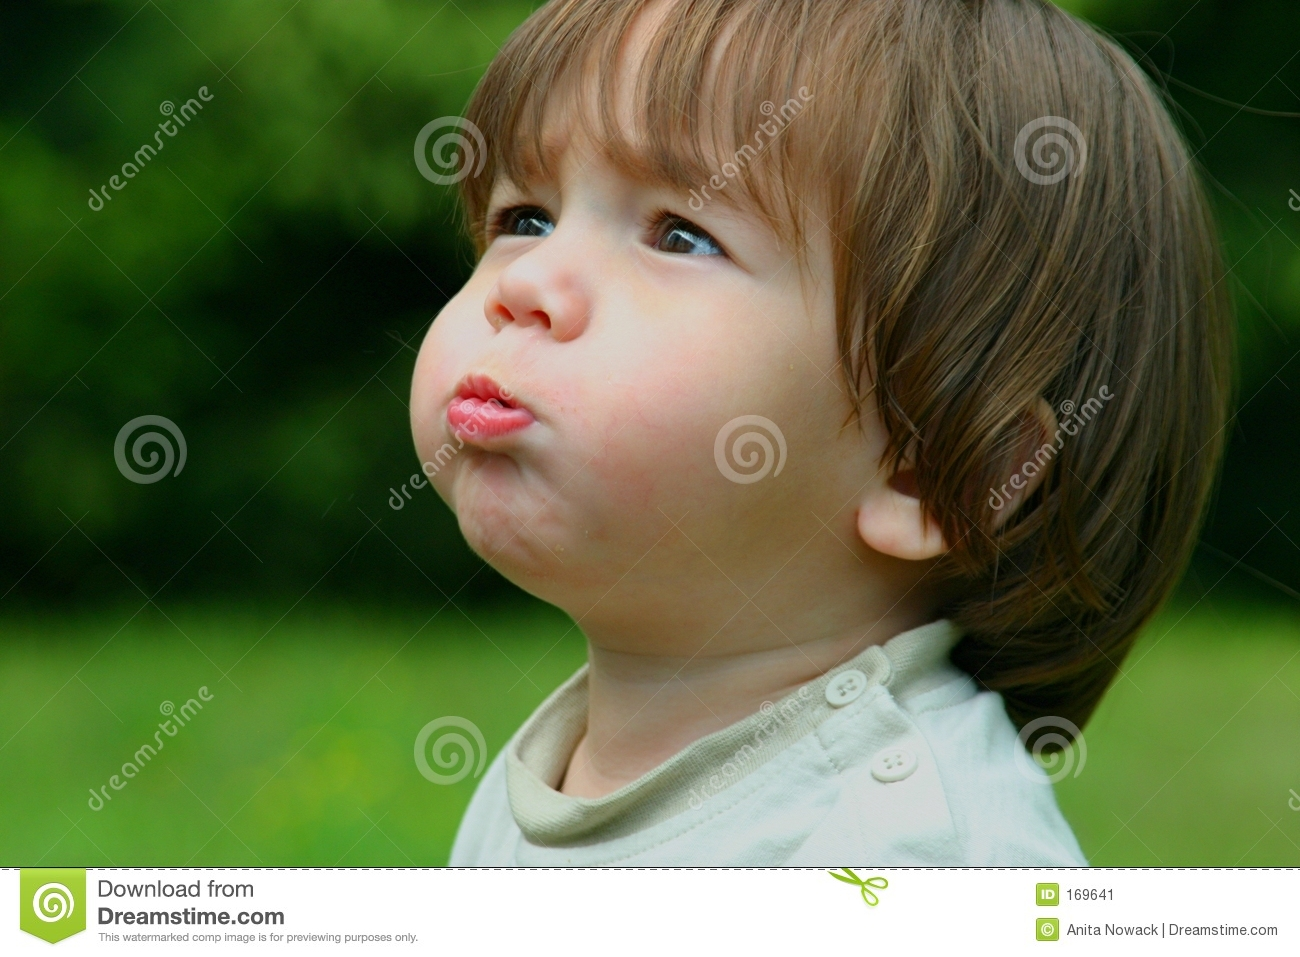 Child active blowing bubbles